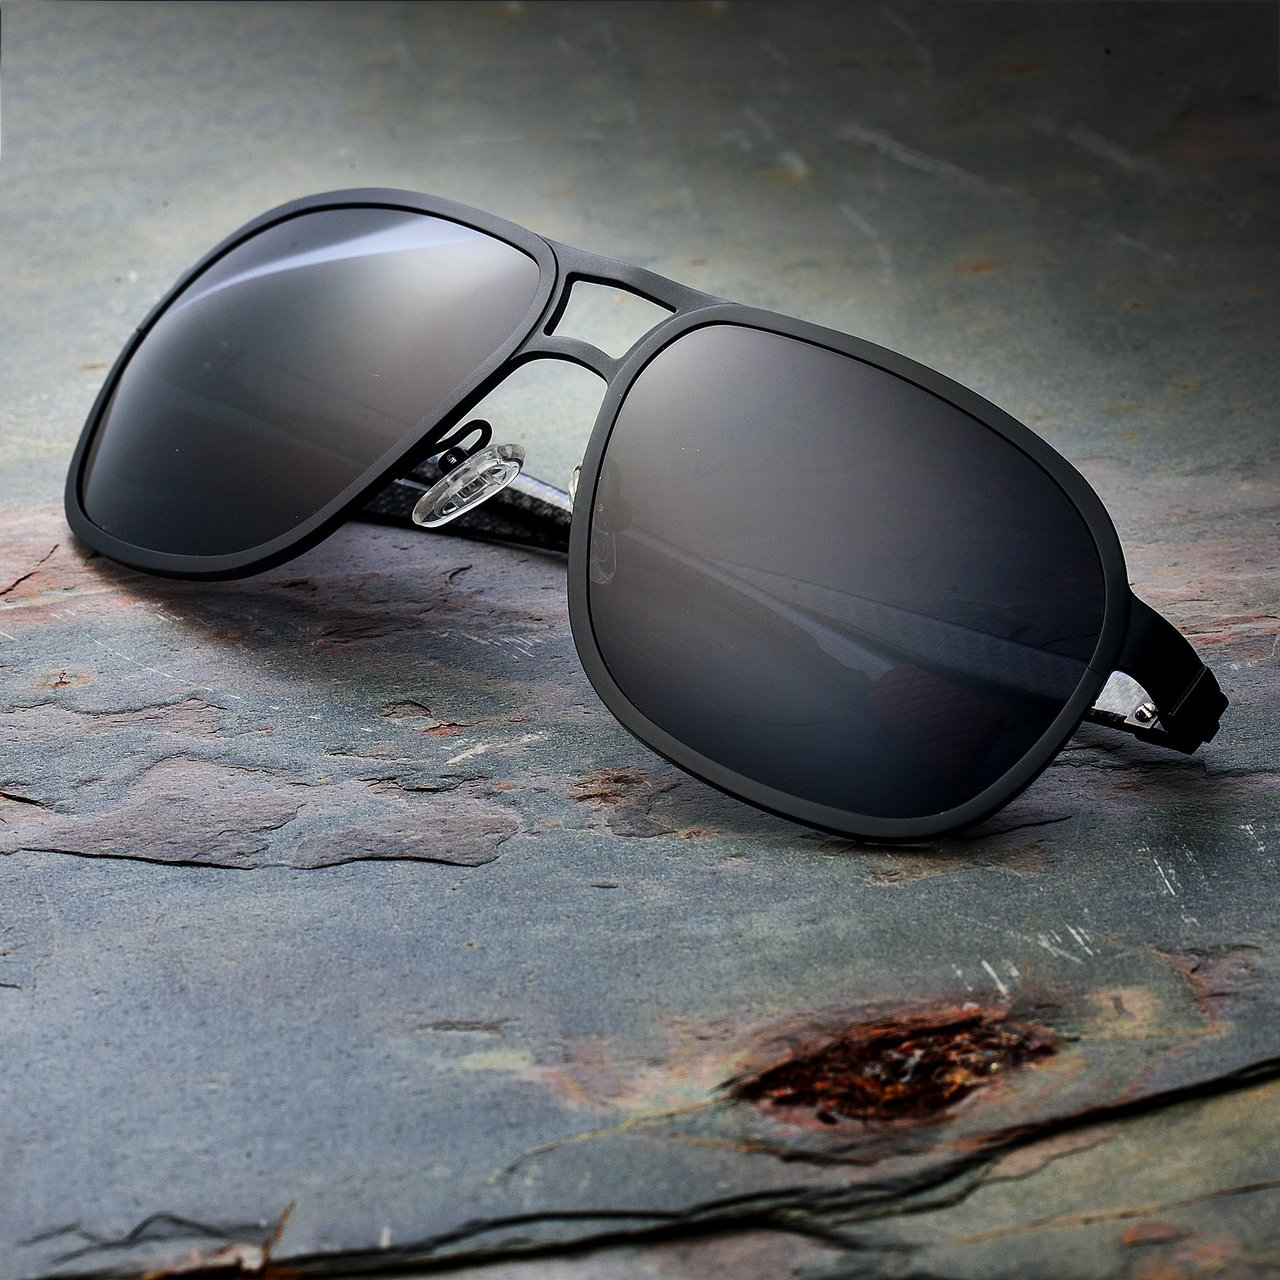 Breed Concorde Black Carbon Fiber Sunglasses